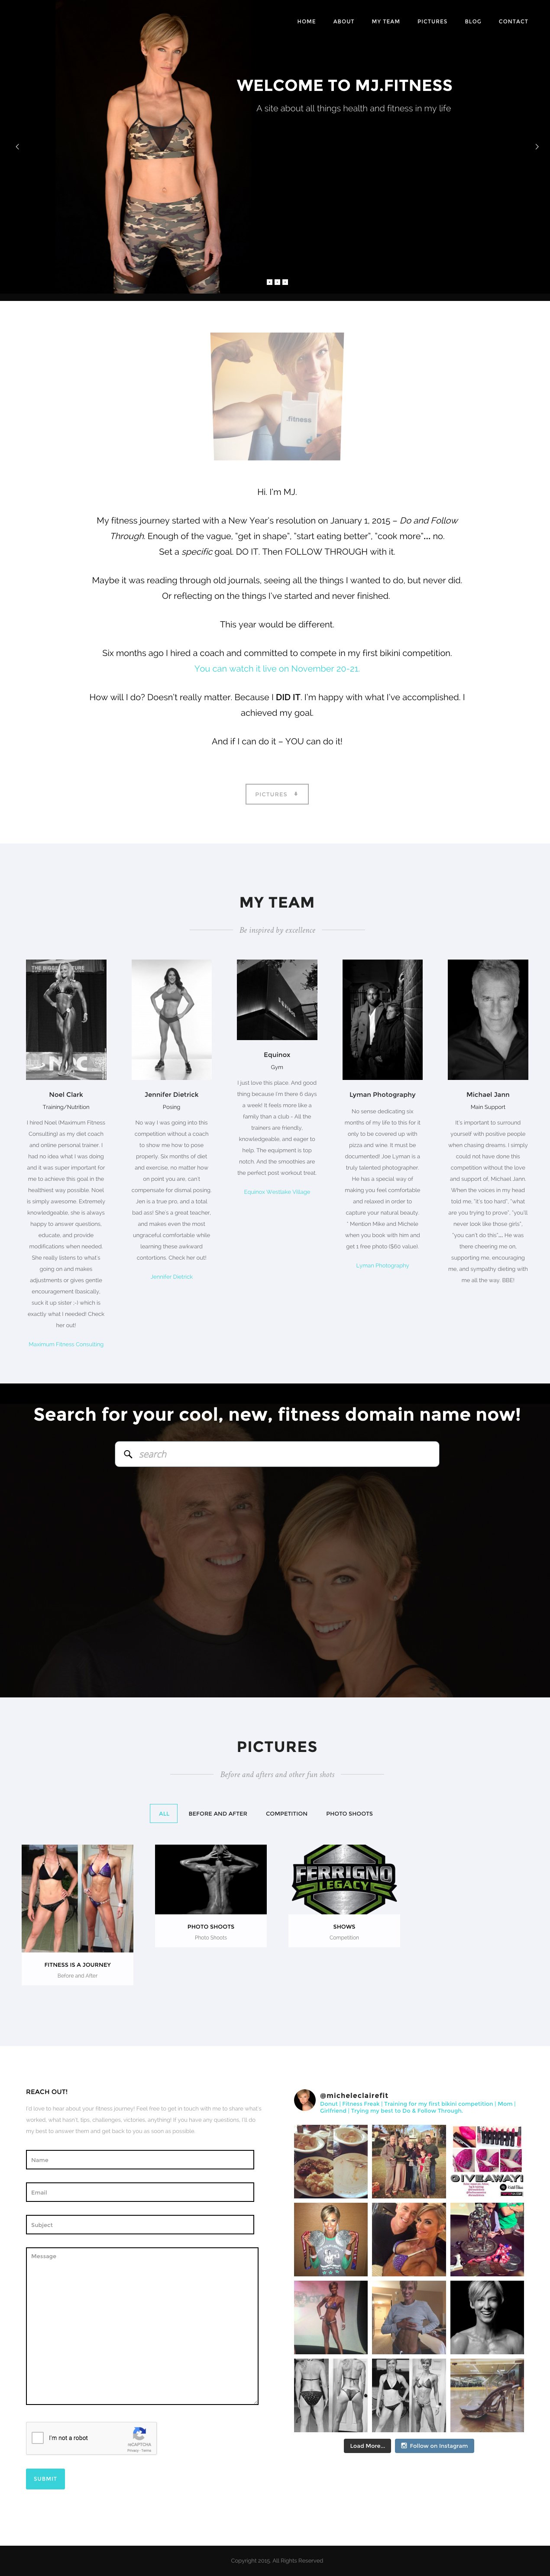 MJ.Fitness Website